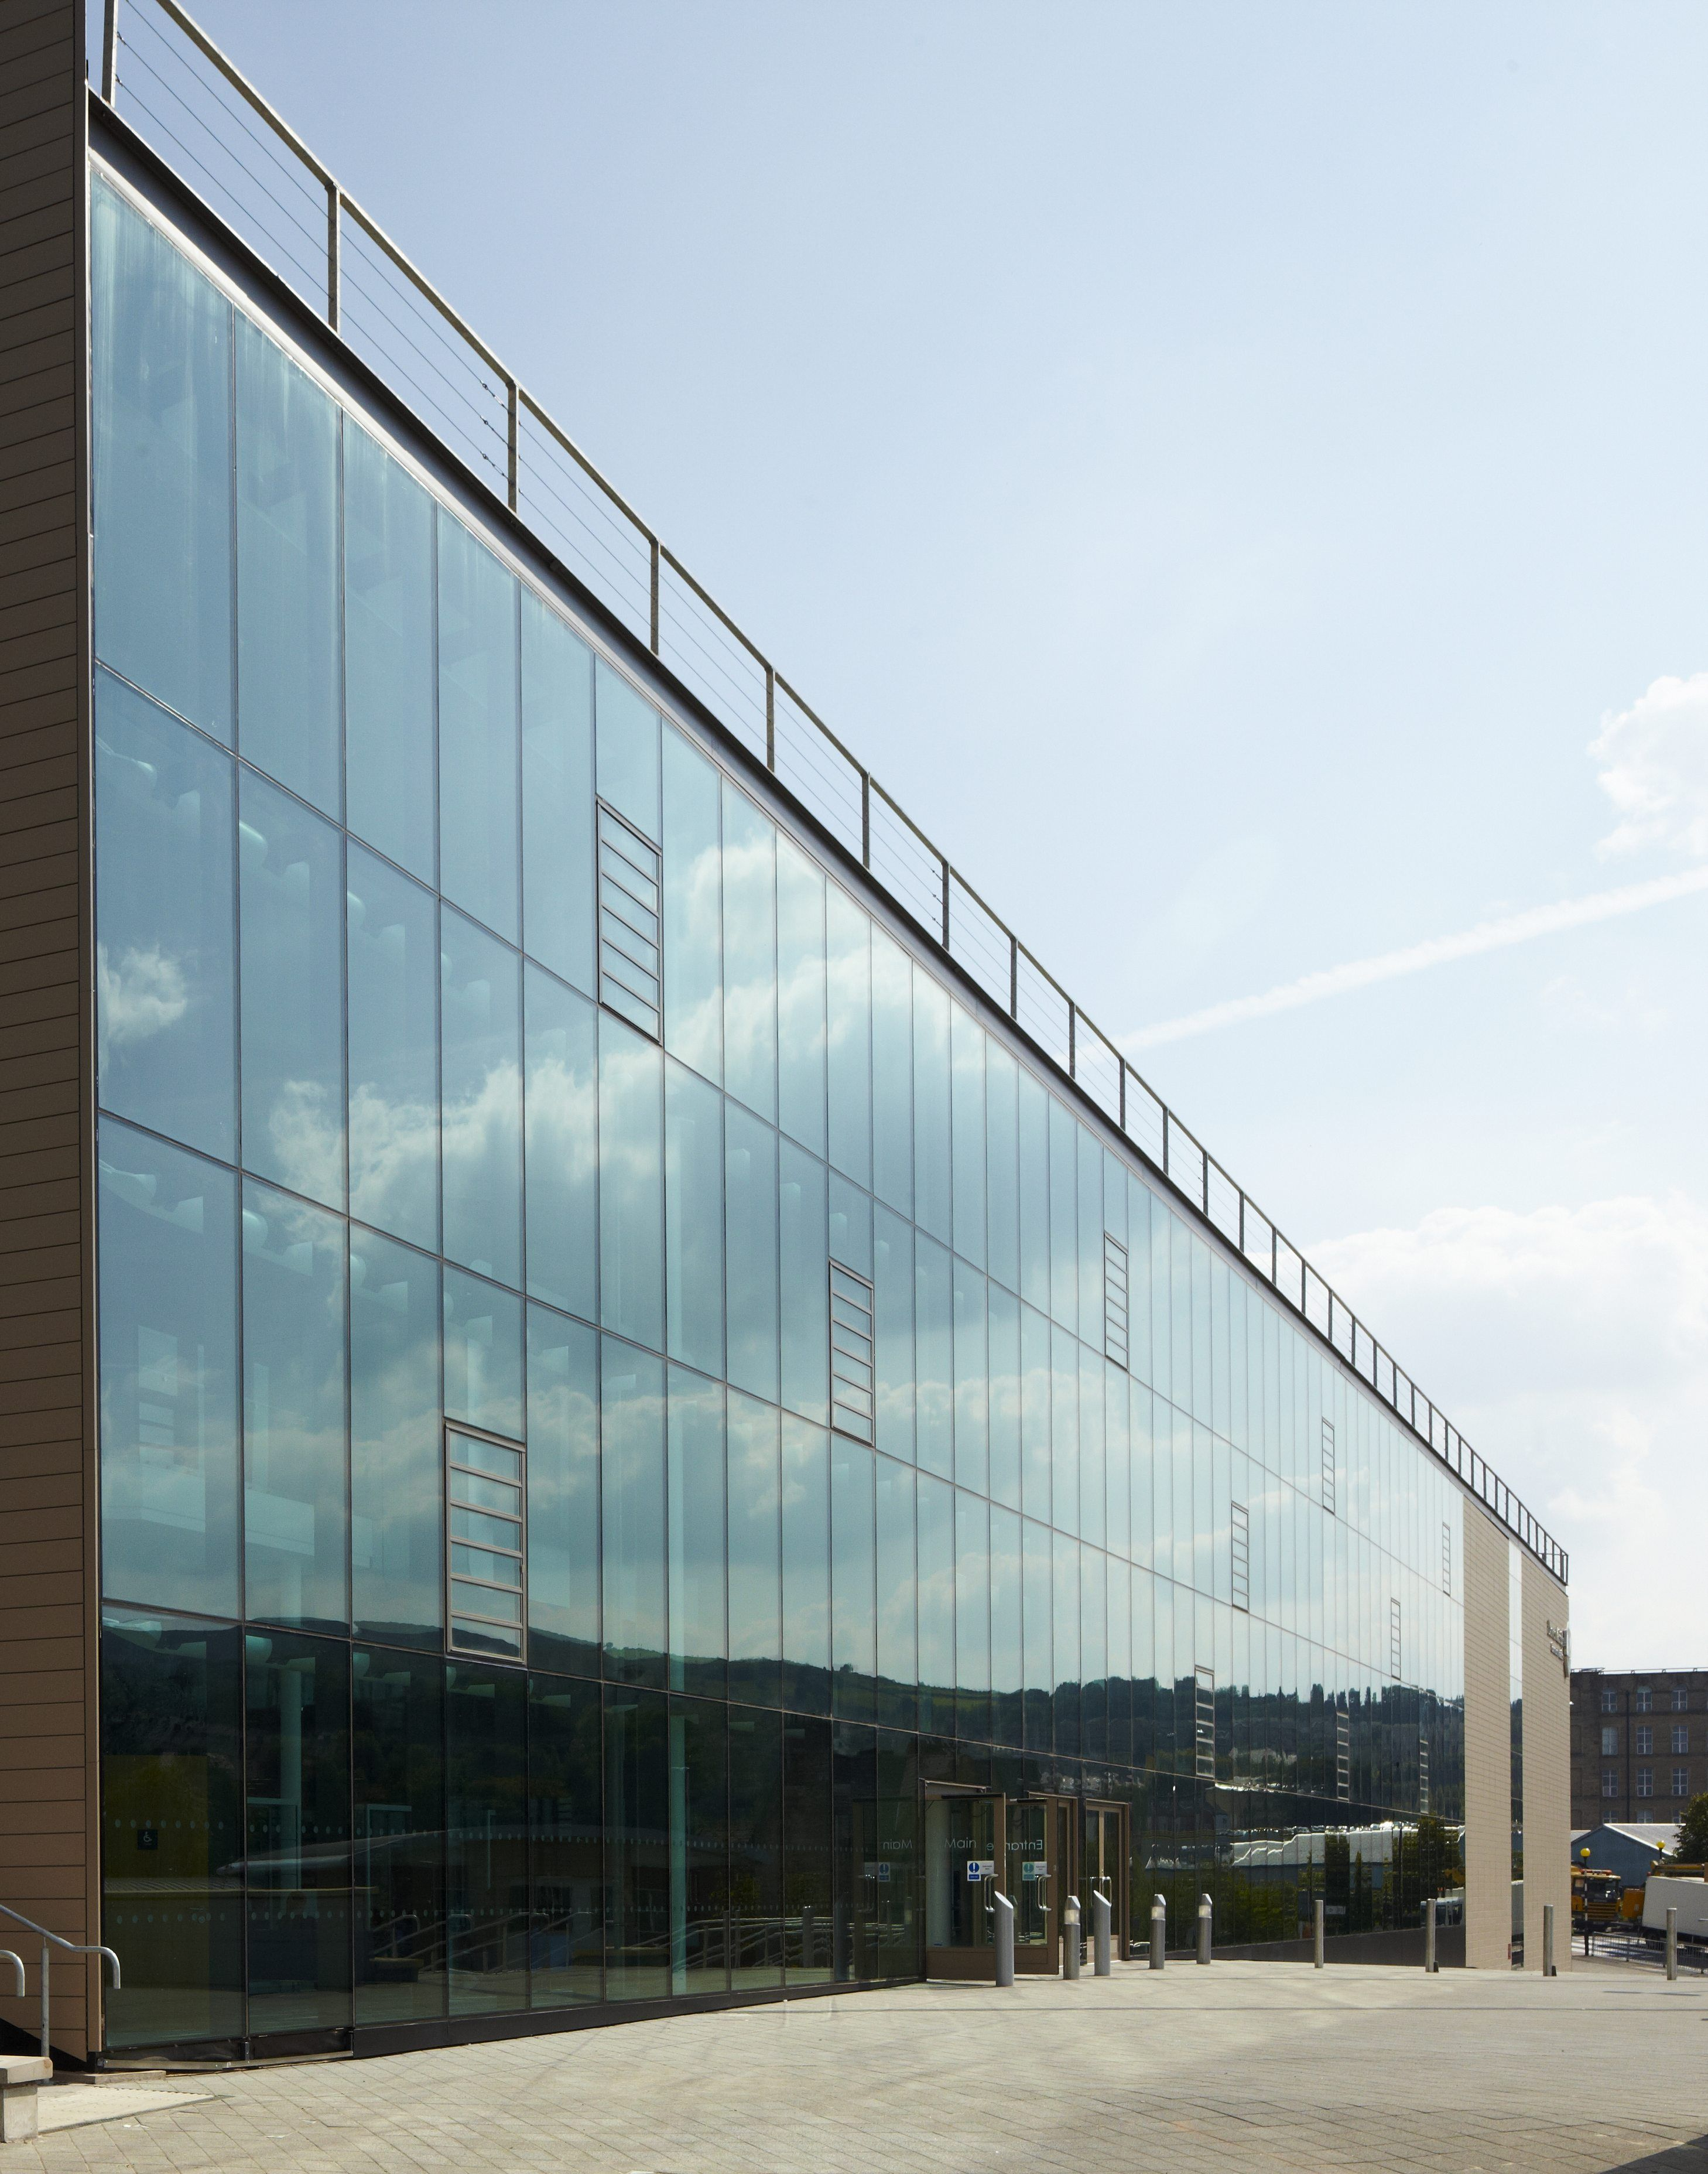 Sg Curtain Wall With Glass Louvres In A Closed Position